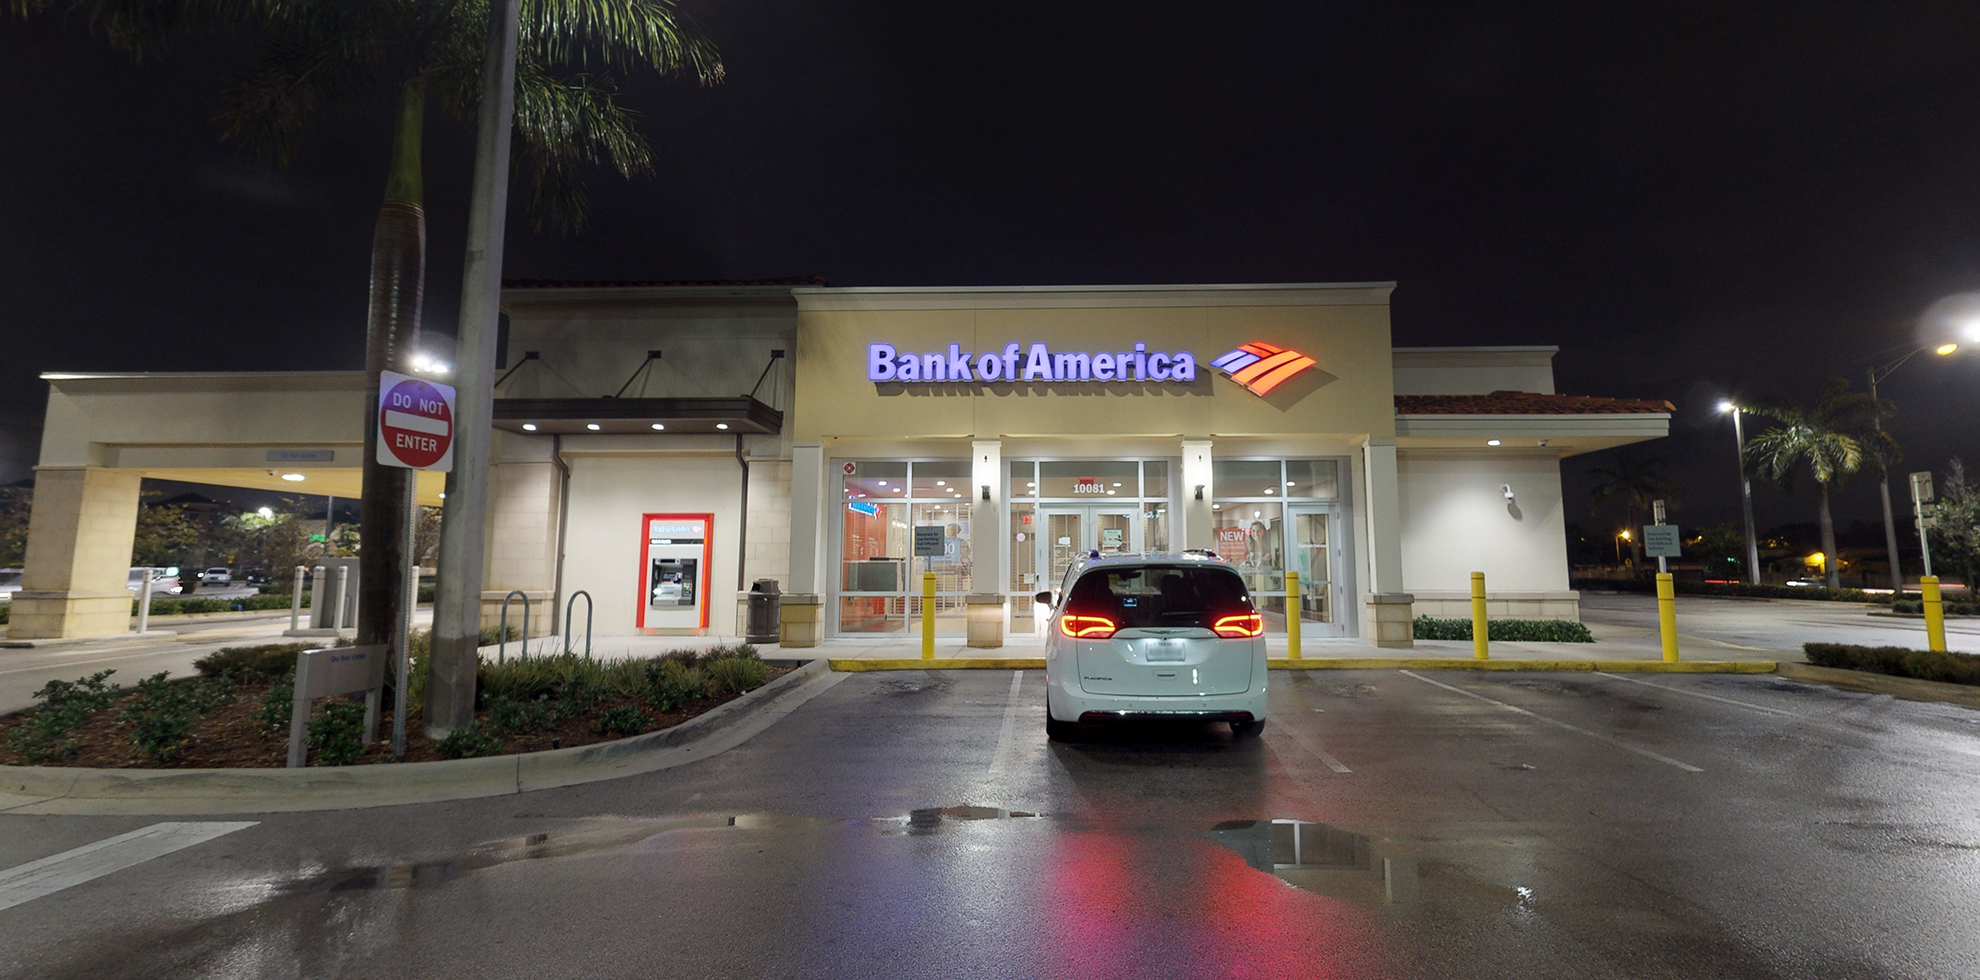 Bank of America financial center with drive-thru ATM   10081 W Flagler St, Miami, FL 33174